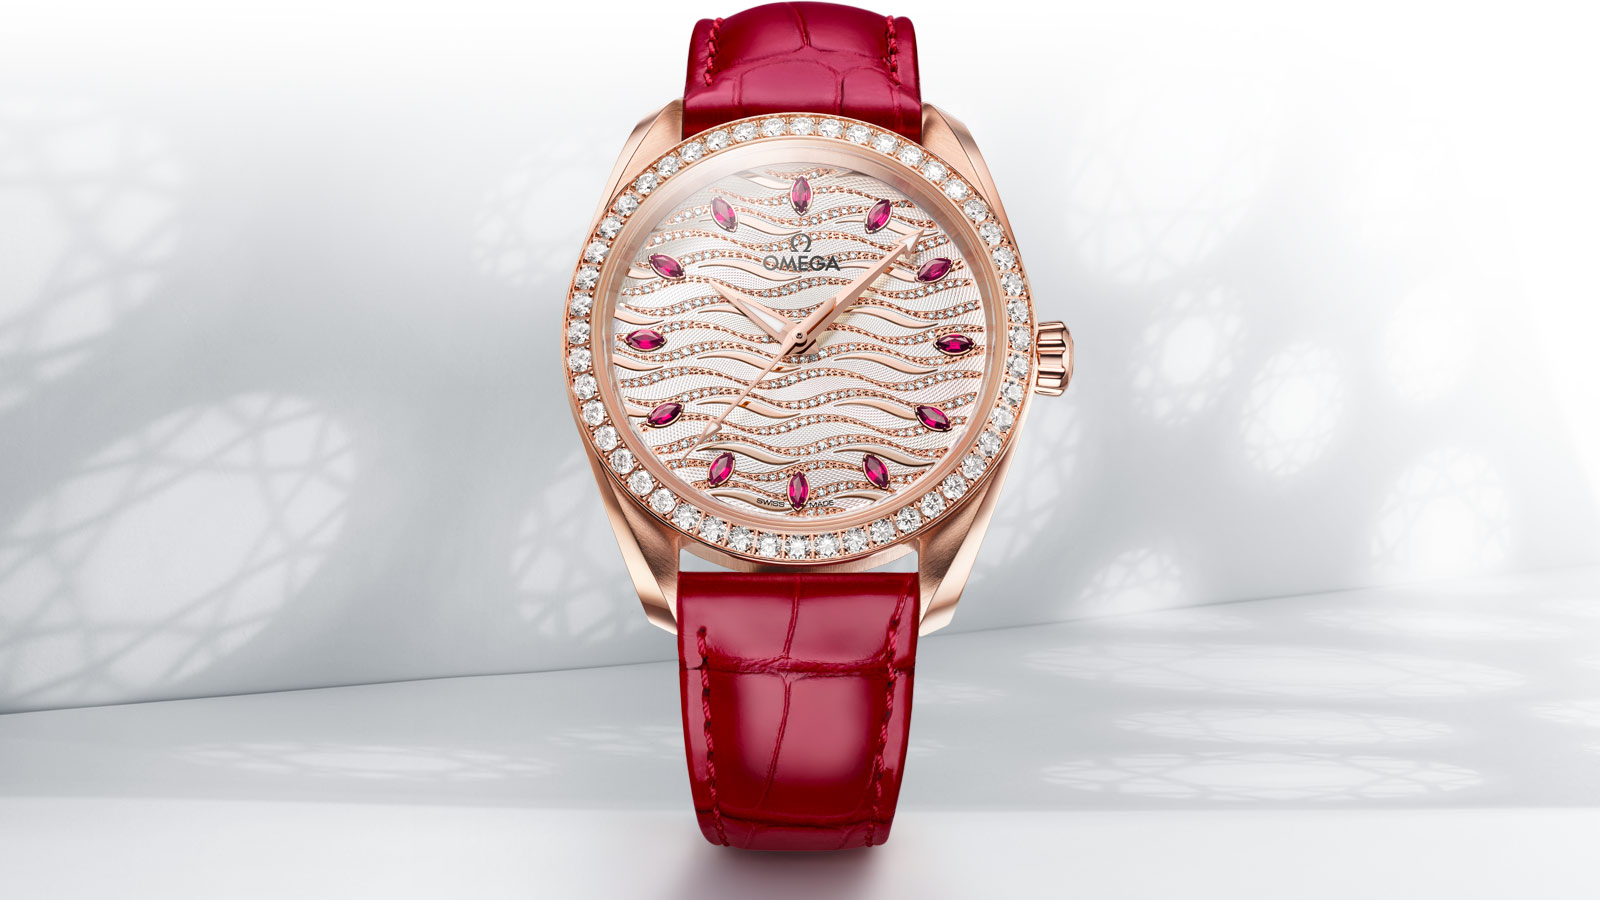 Front view of the Seamaster Aqua Terra Jewellery with its diamond encrusted bezel and 12 ruby indexes